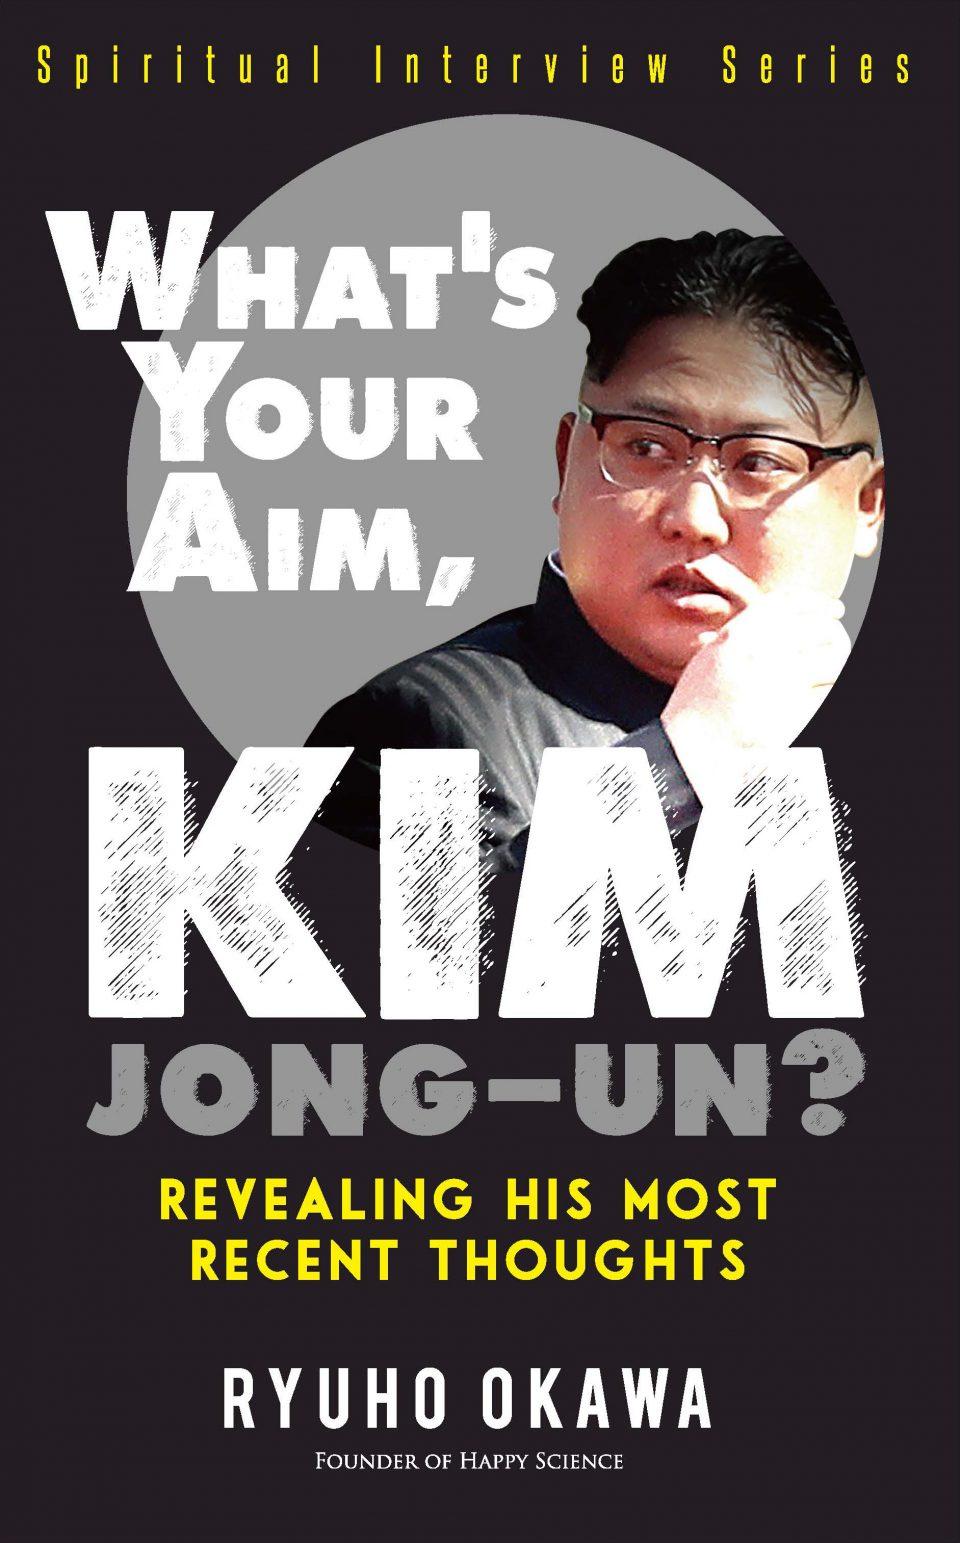 What's Your Aim, Kim Jong-un?: Revealing His Most Recent Thoughts is out now!